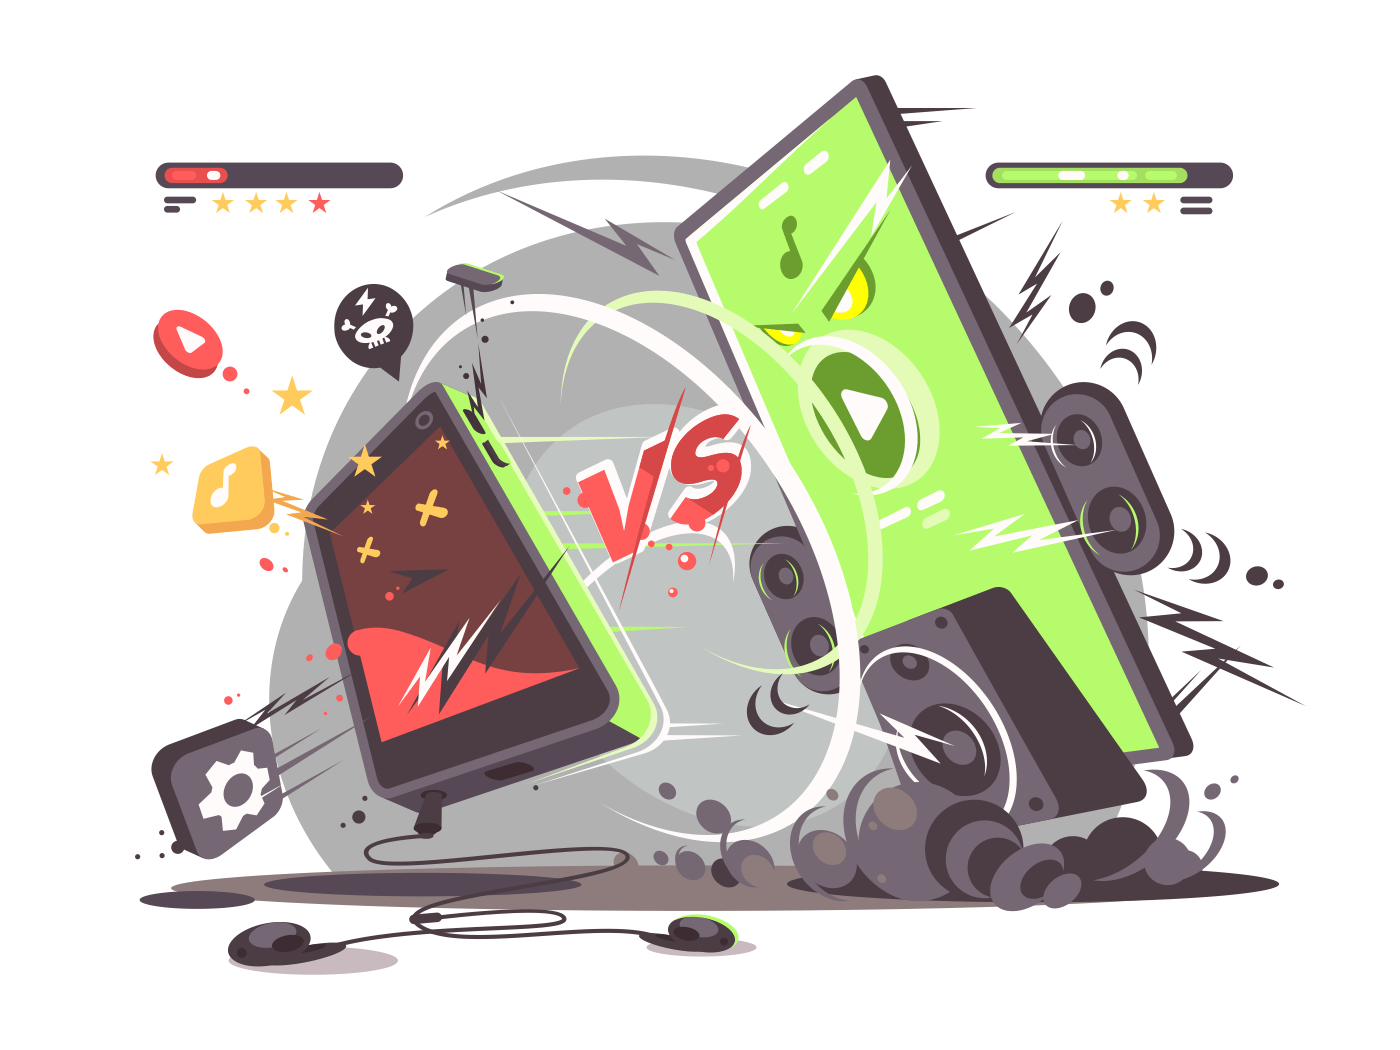 Battle of smartphones vs. Comparison of new technologies modern phone. Vector illustration